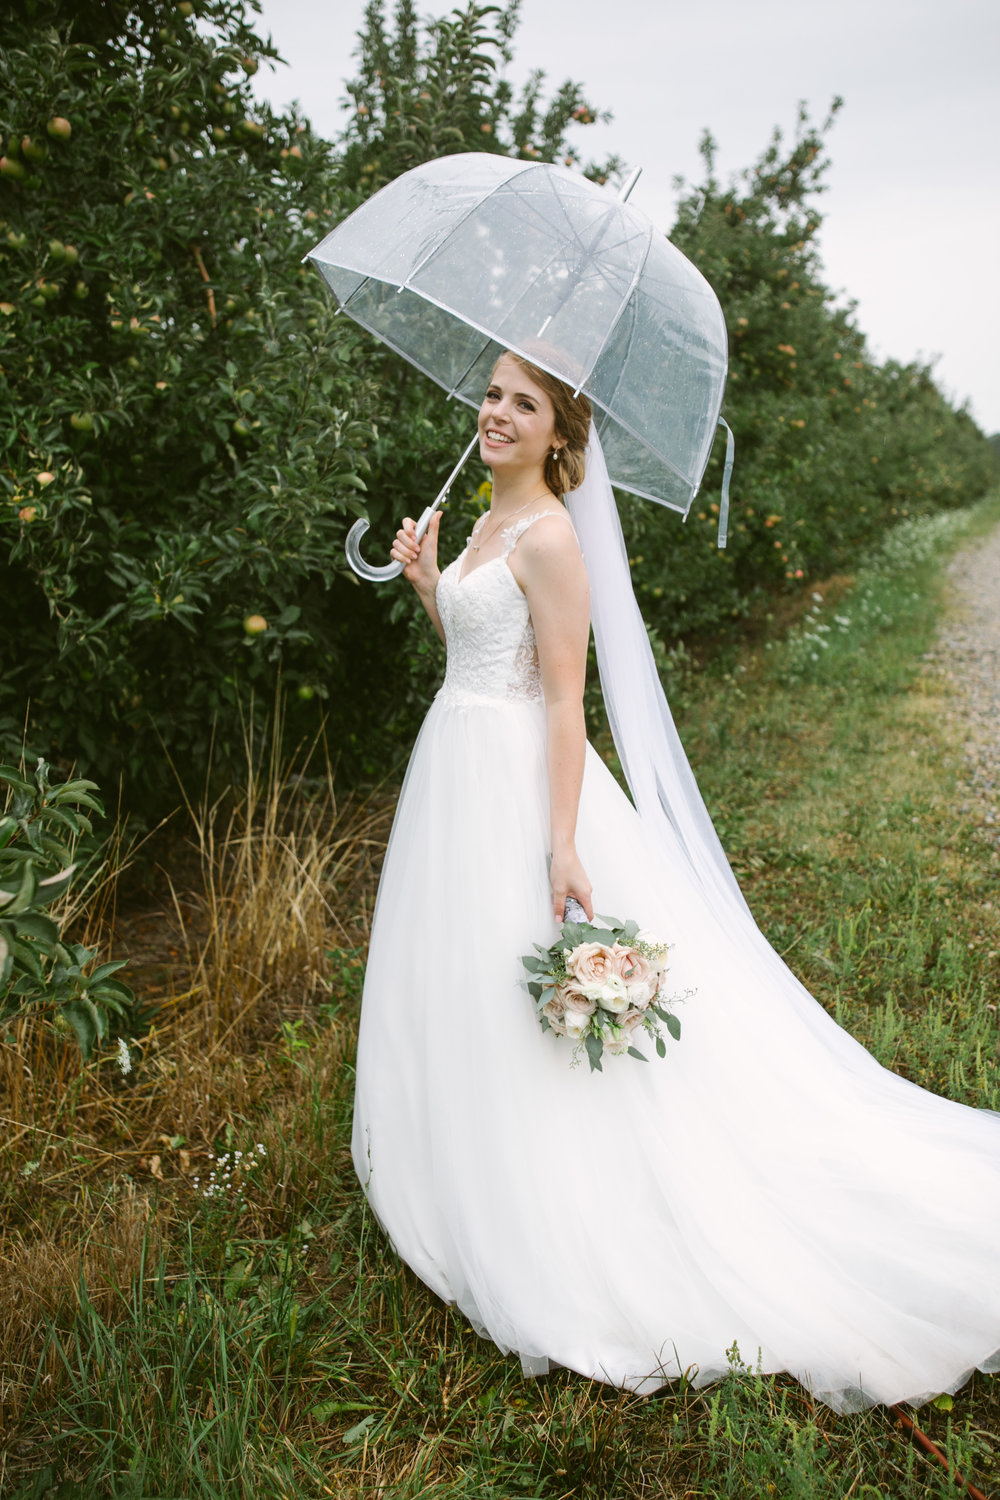 grandrapidswedding_grandrapids_grandrapidsweddingphotographer_countrywedding_orchardwedding_rainyweddingday_rain_summerwedding_grandrapidsphotographer_luna_lunawedding_jessicadarling_jdarlingphoto_ericaandaj043.jpg